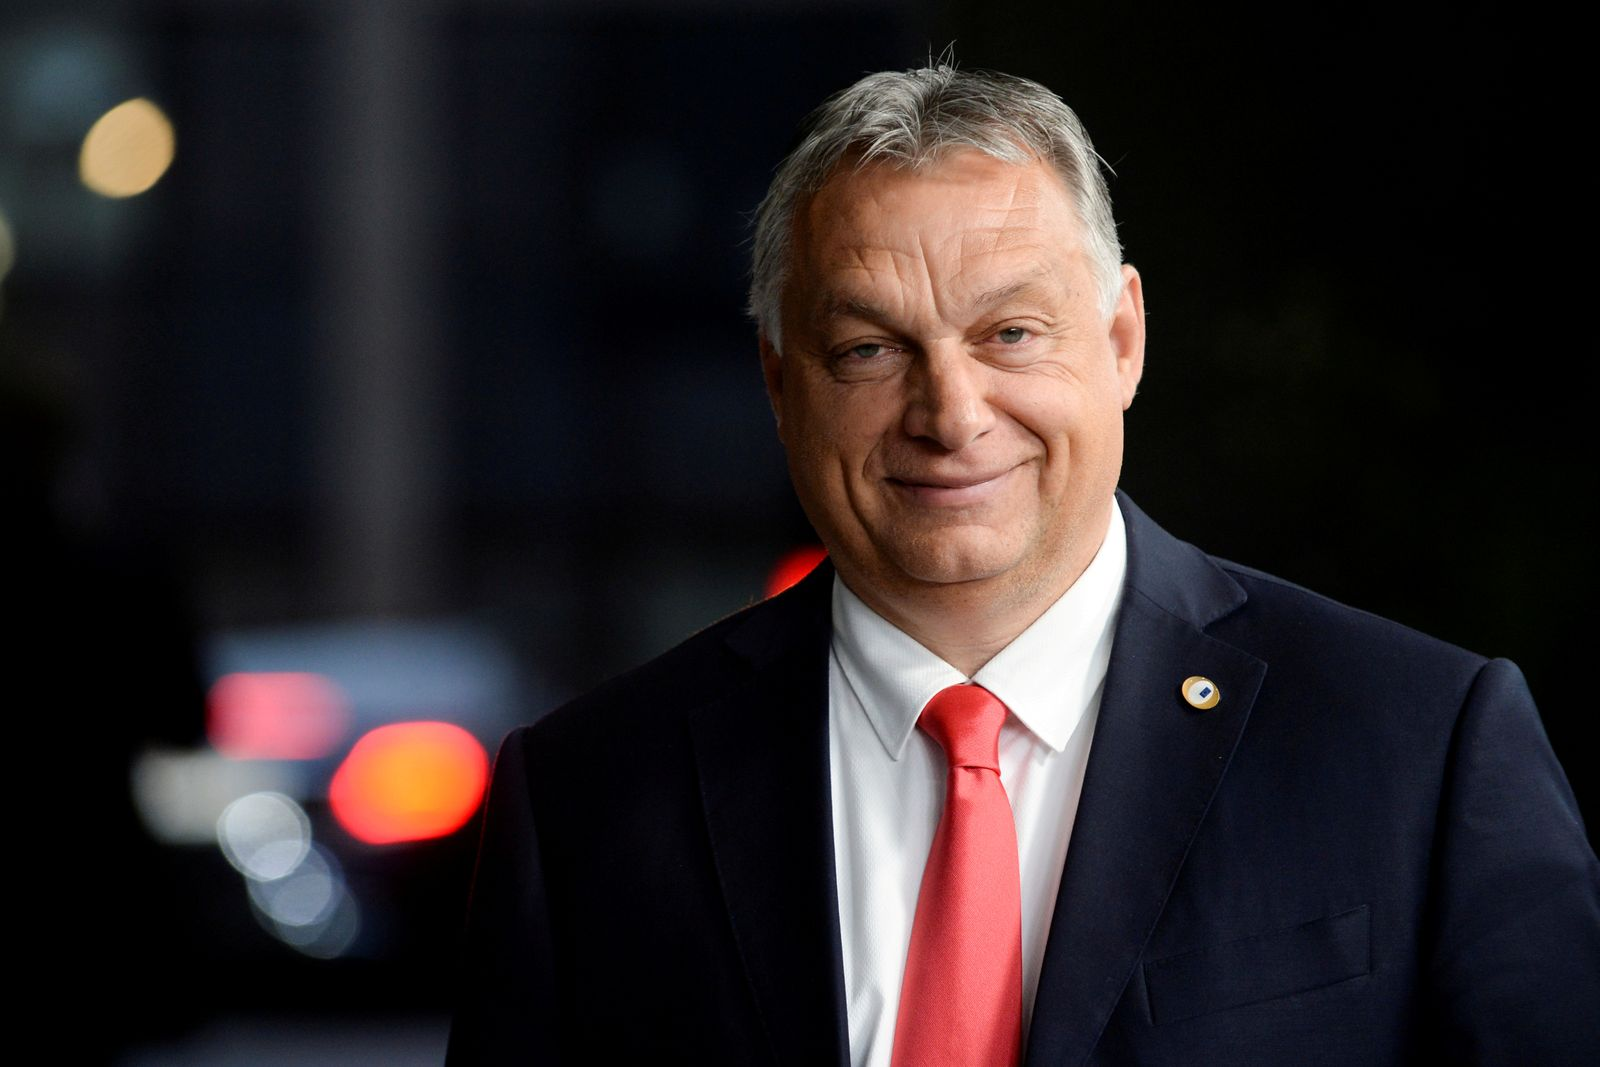 FILE PHOTO: Hungarian Prime Minister Viktor Orban departs from an EU summit in Brussels